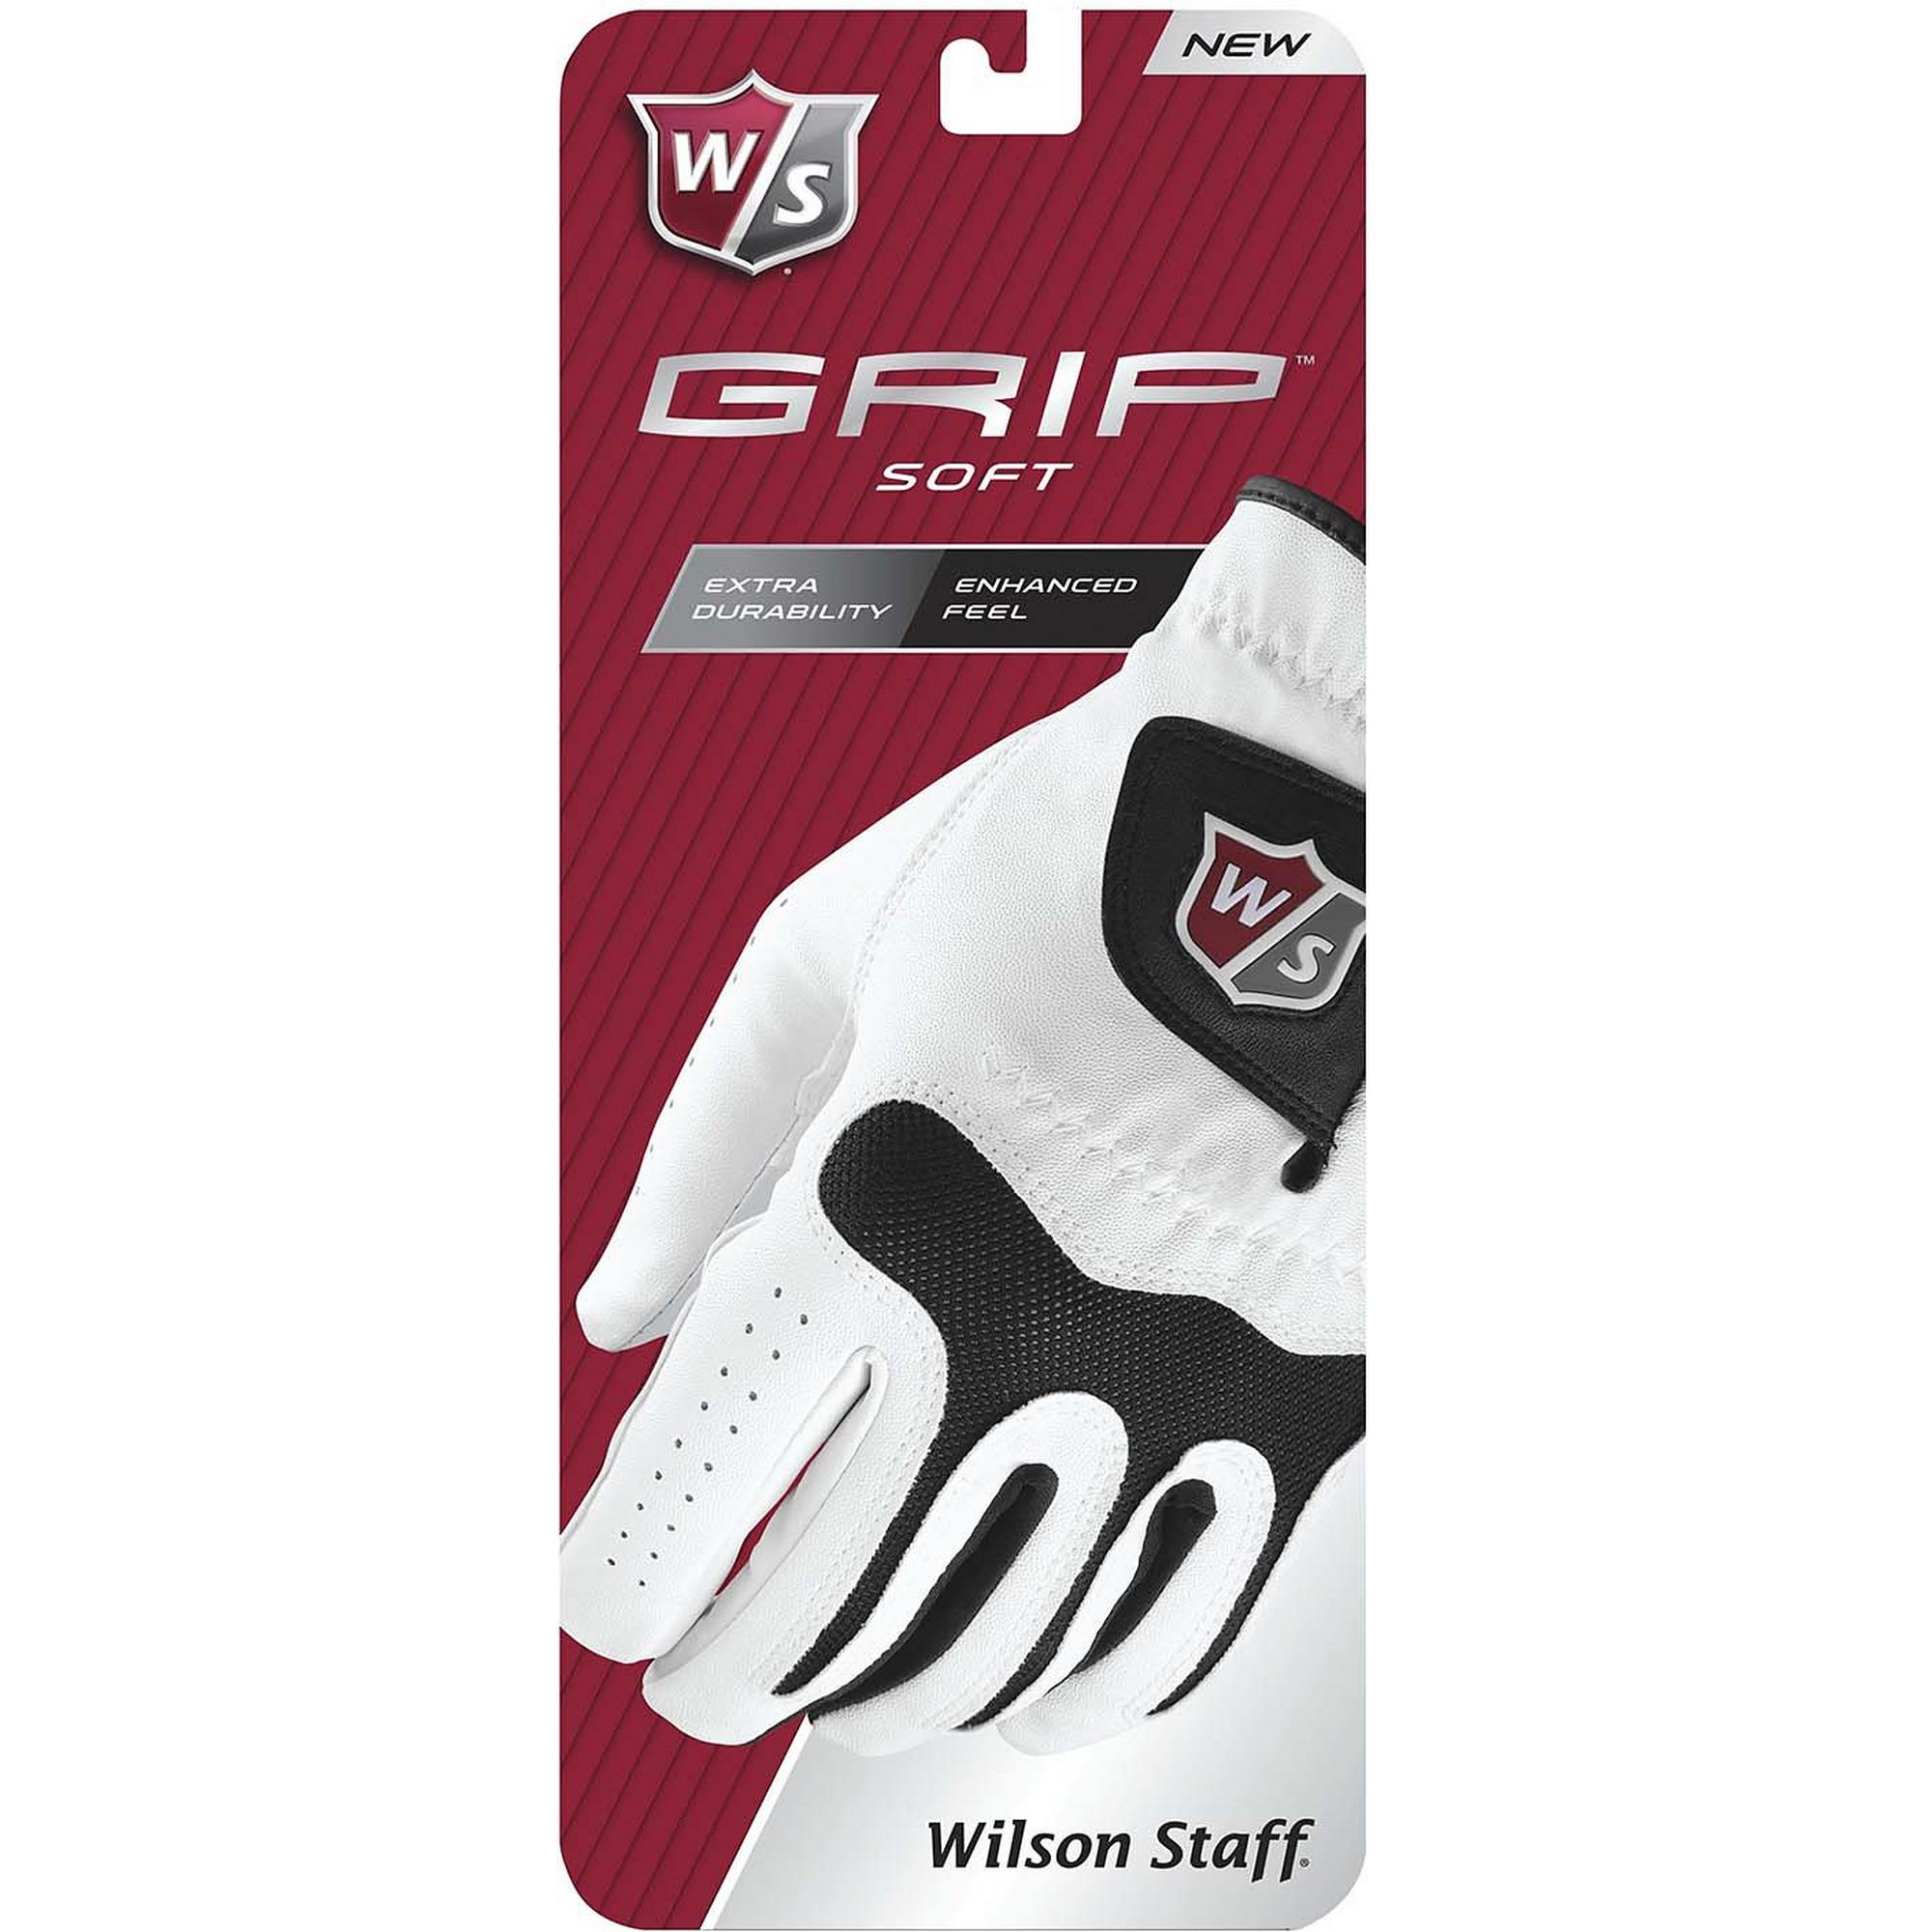 Grip Soft Glove